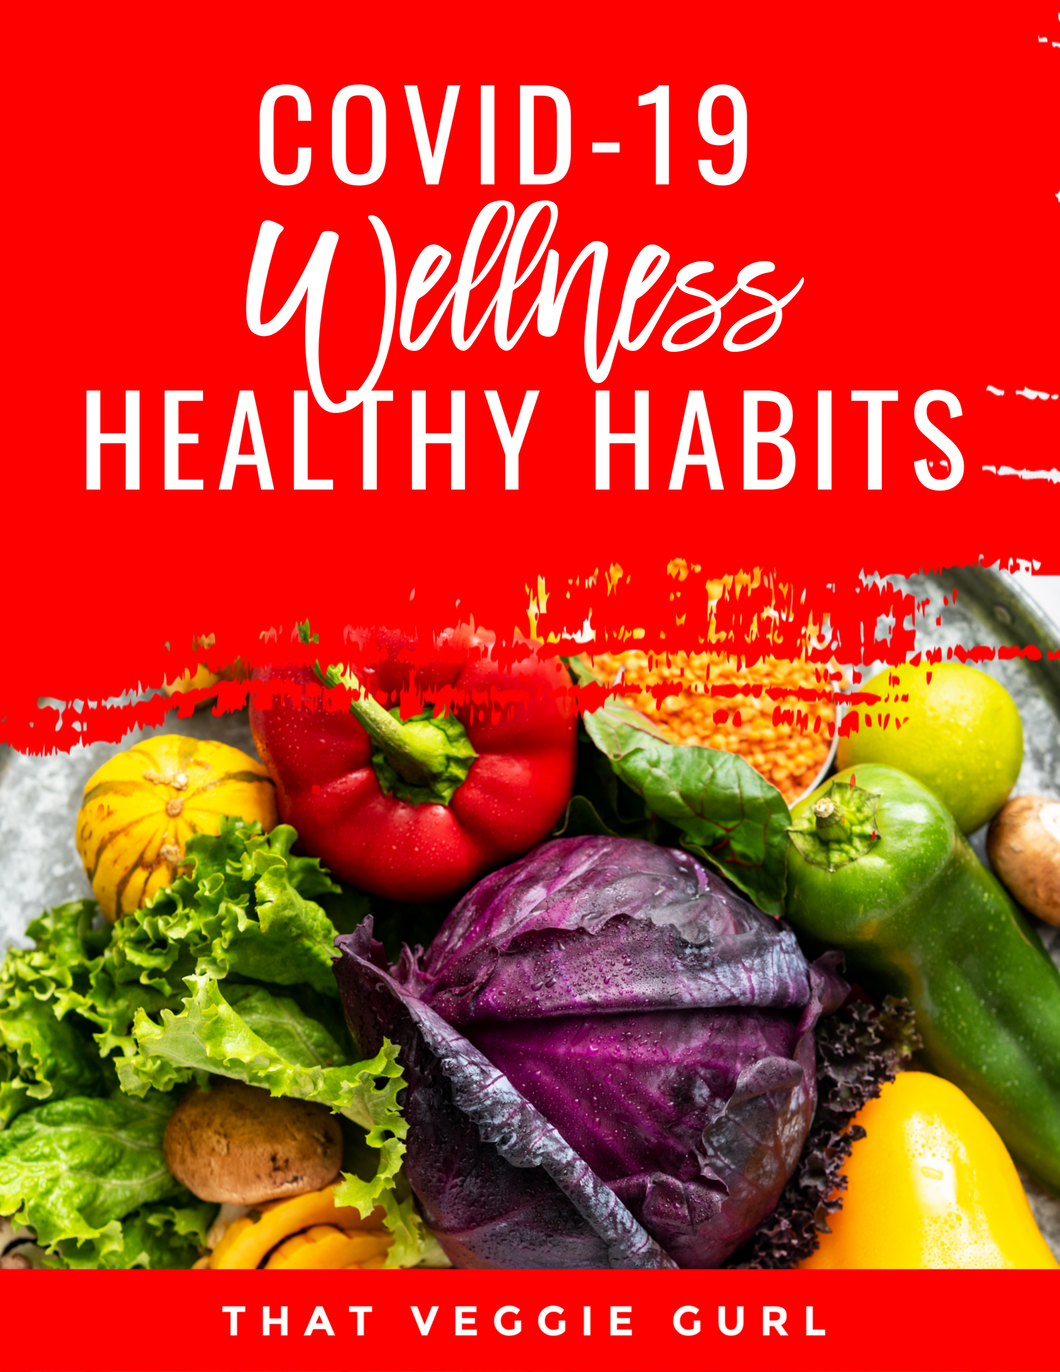 COVID-19 WELLNESS HEALTHY HABIT SERIES